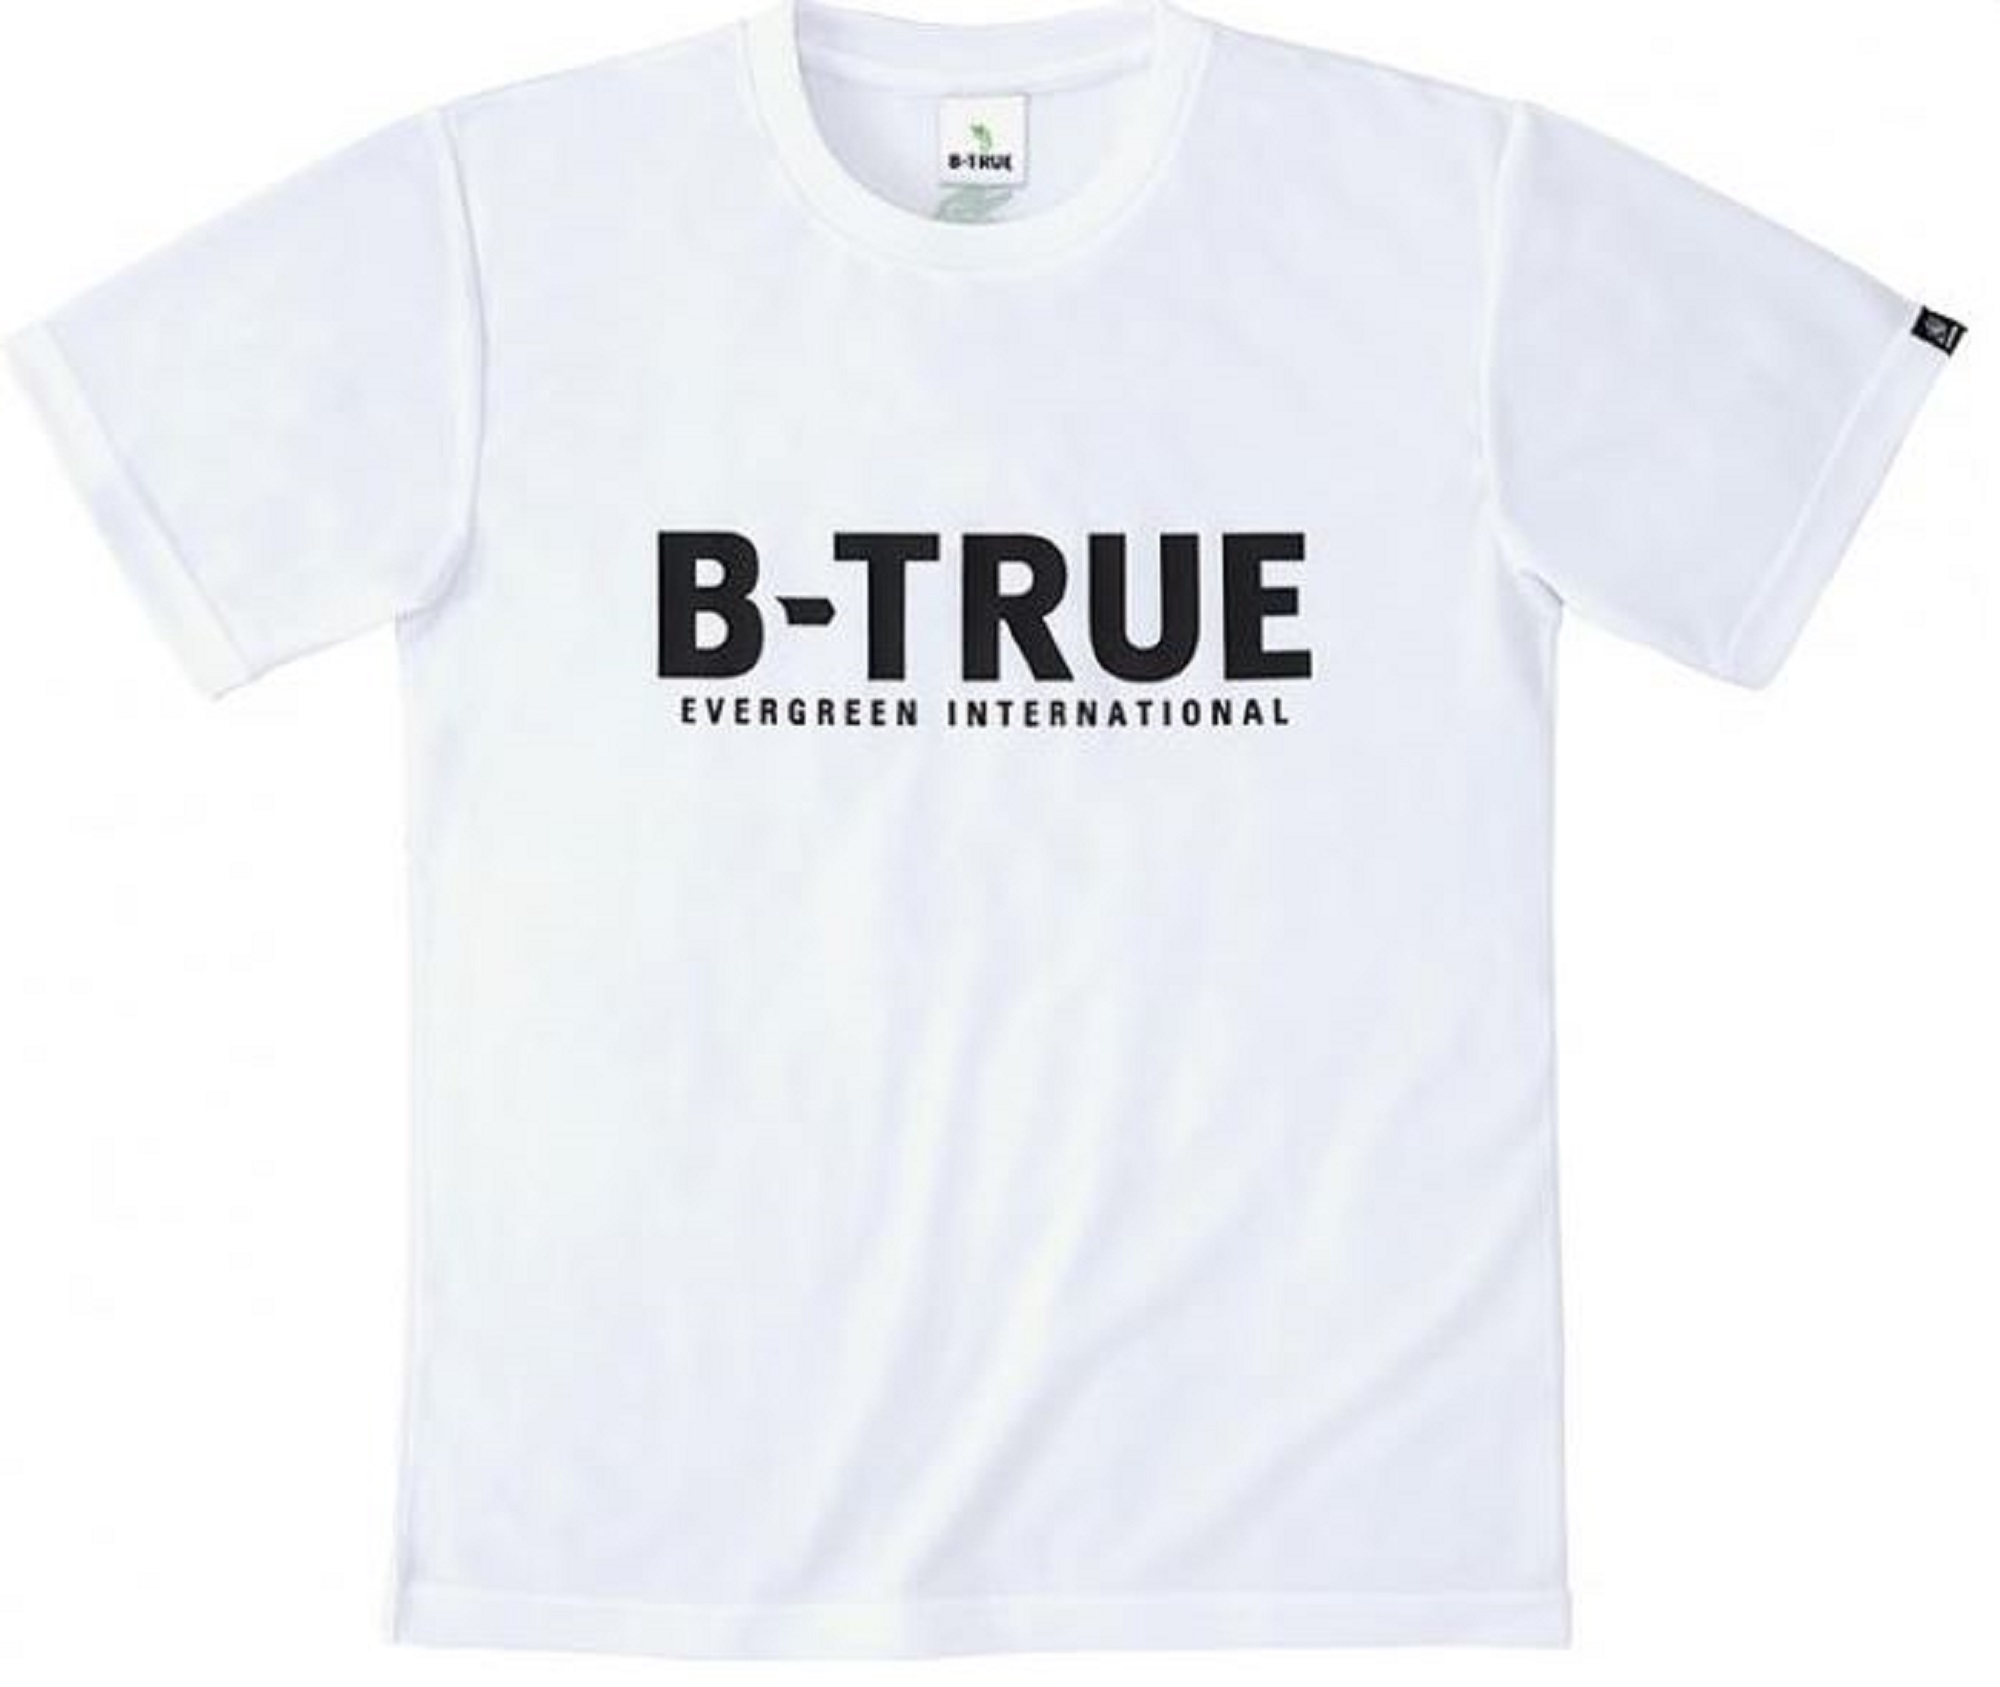 Evergreen T-Shirt Dry Fit Short Sleeve B-True A Type Size 3L White (7800)